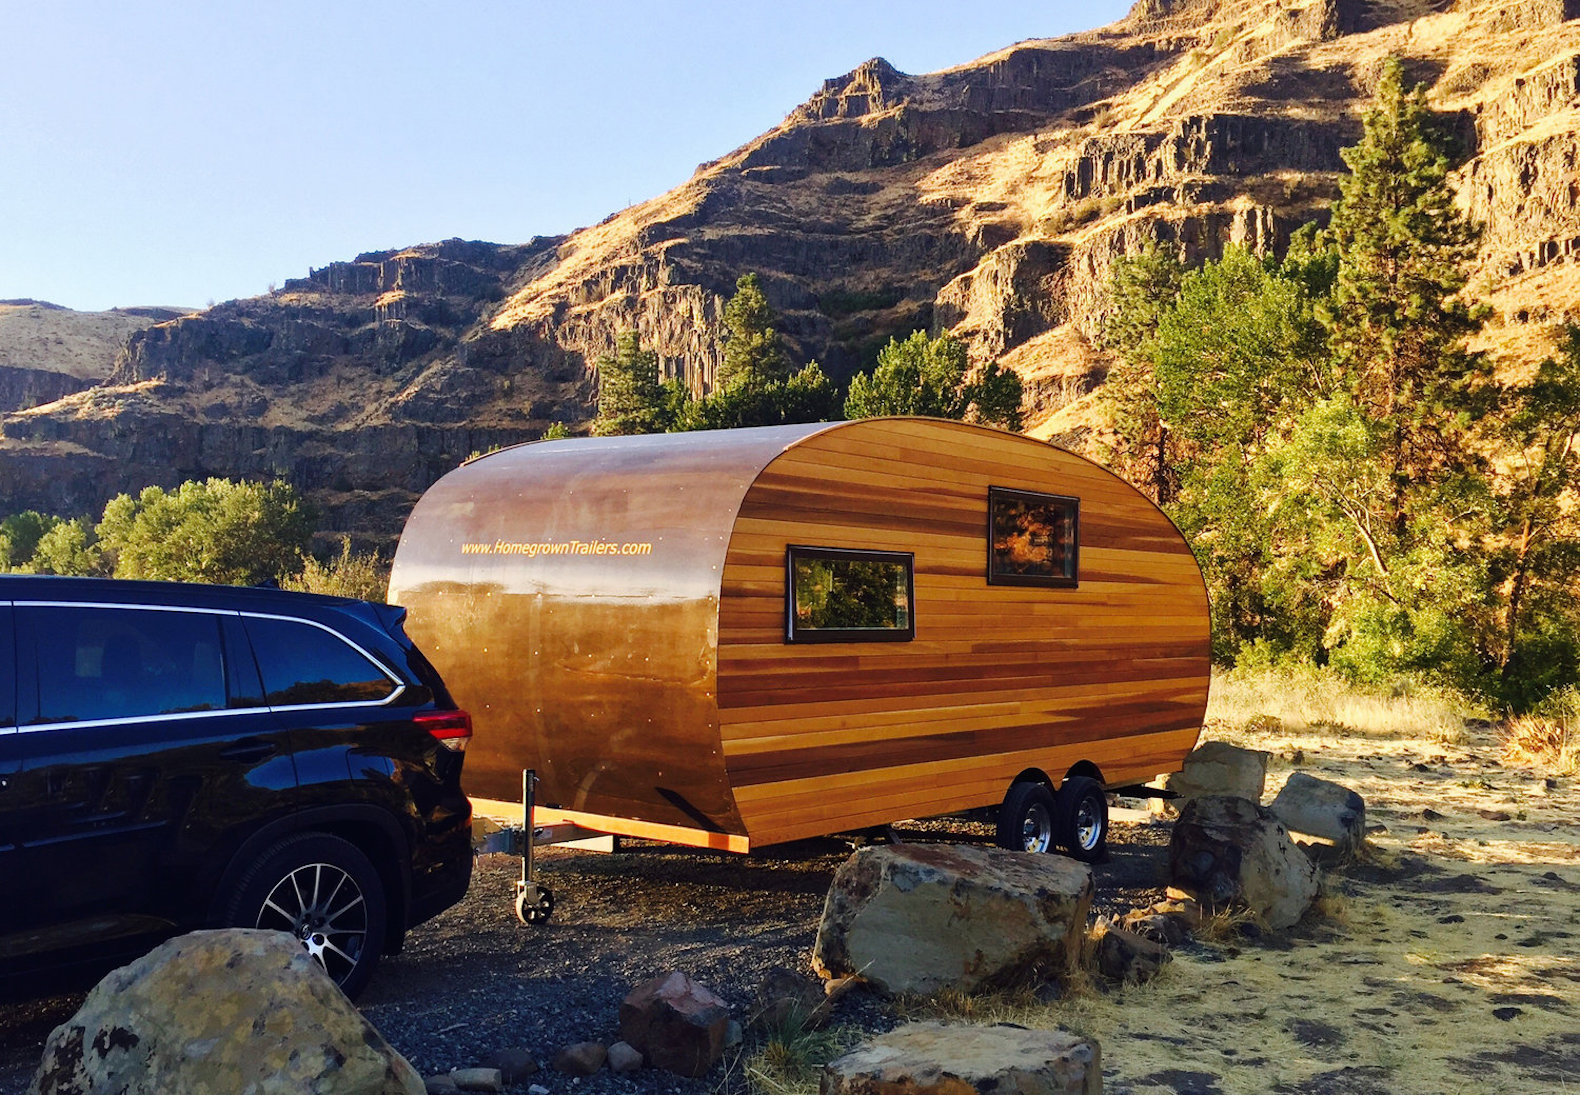 The Timberline camper lets you hit the road in handcrafted, sustainable style